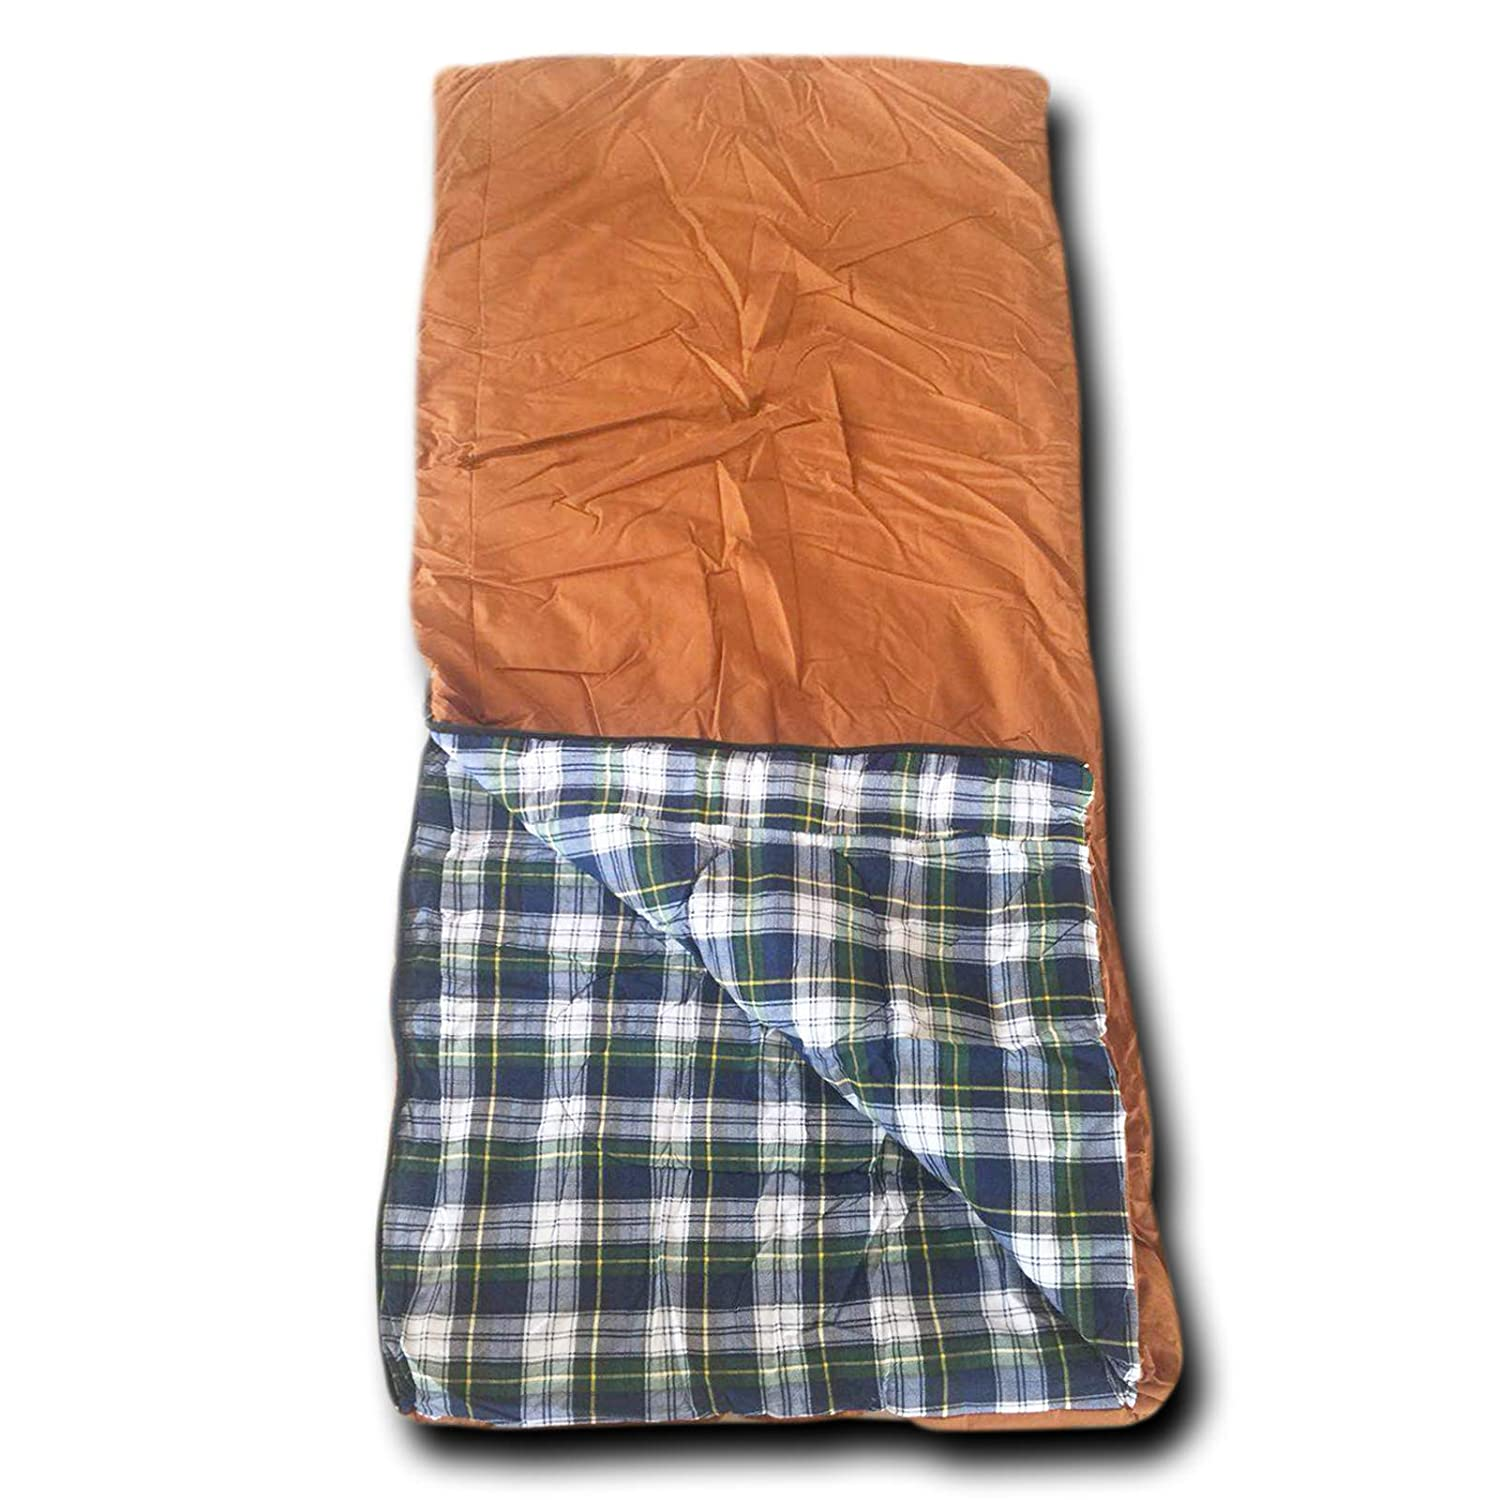 Wolftraders 20-Degree Fahrenheit Cotton Canvas Classic Envelope Style Square Sleeping Bag with Flannel Lining